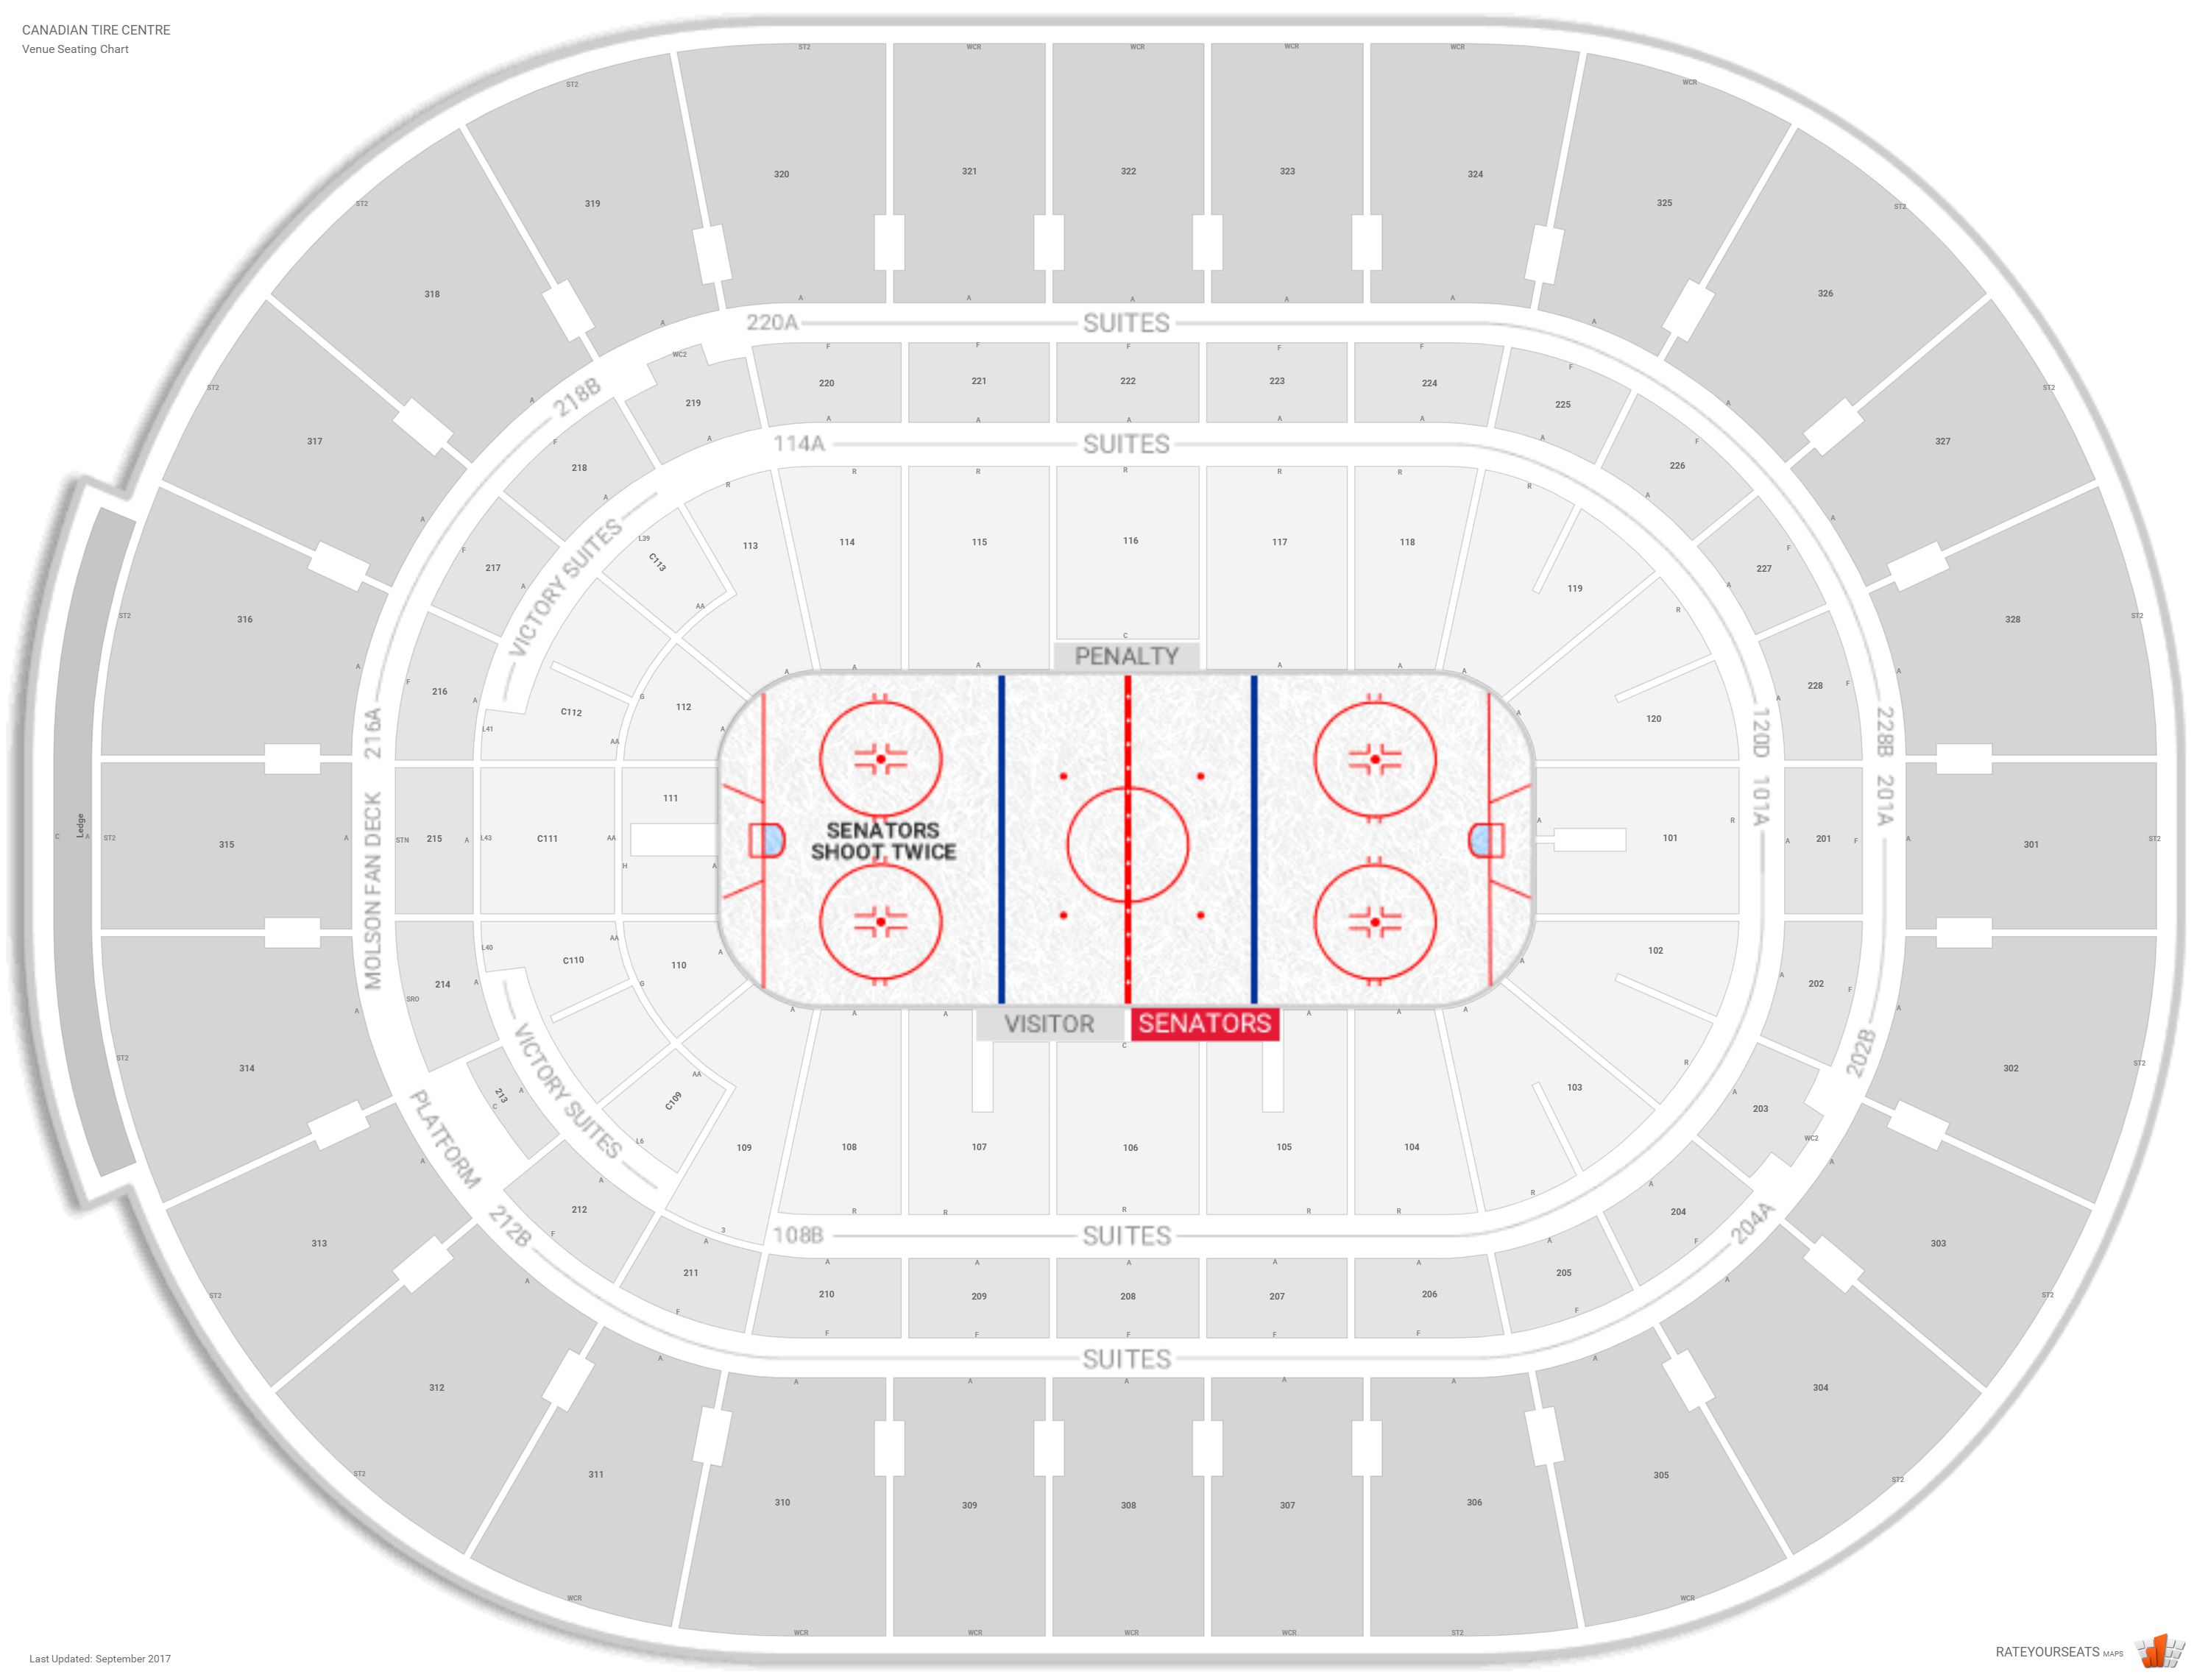 Canadian Tire Centre Seating Map Ottawa Senators Seating Guide   Canadian Tire Centre